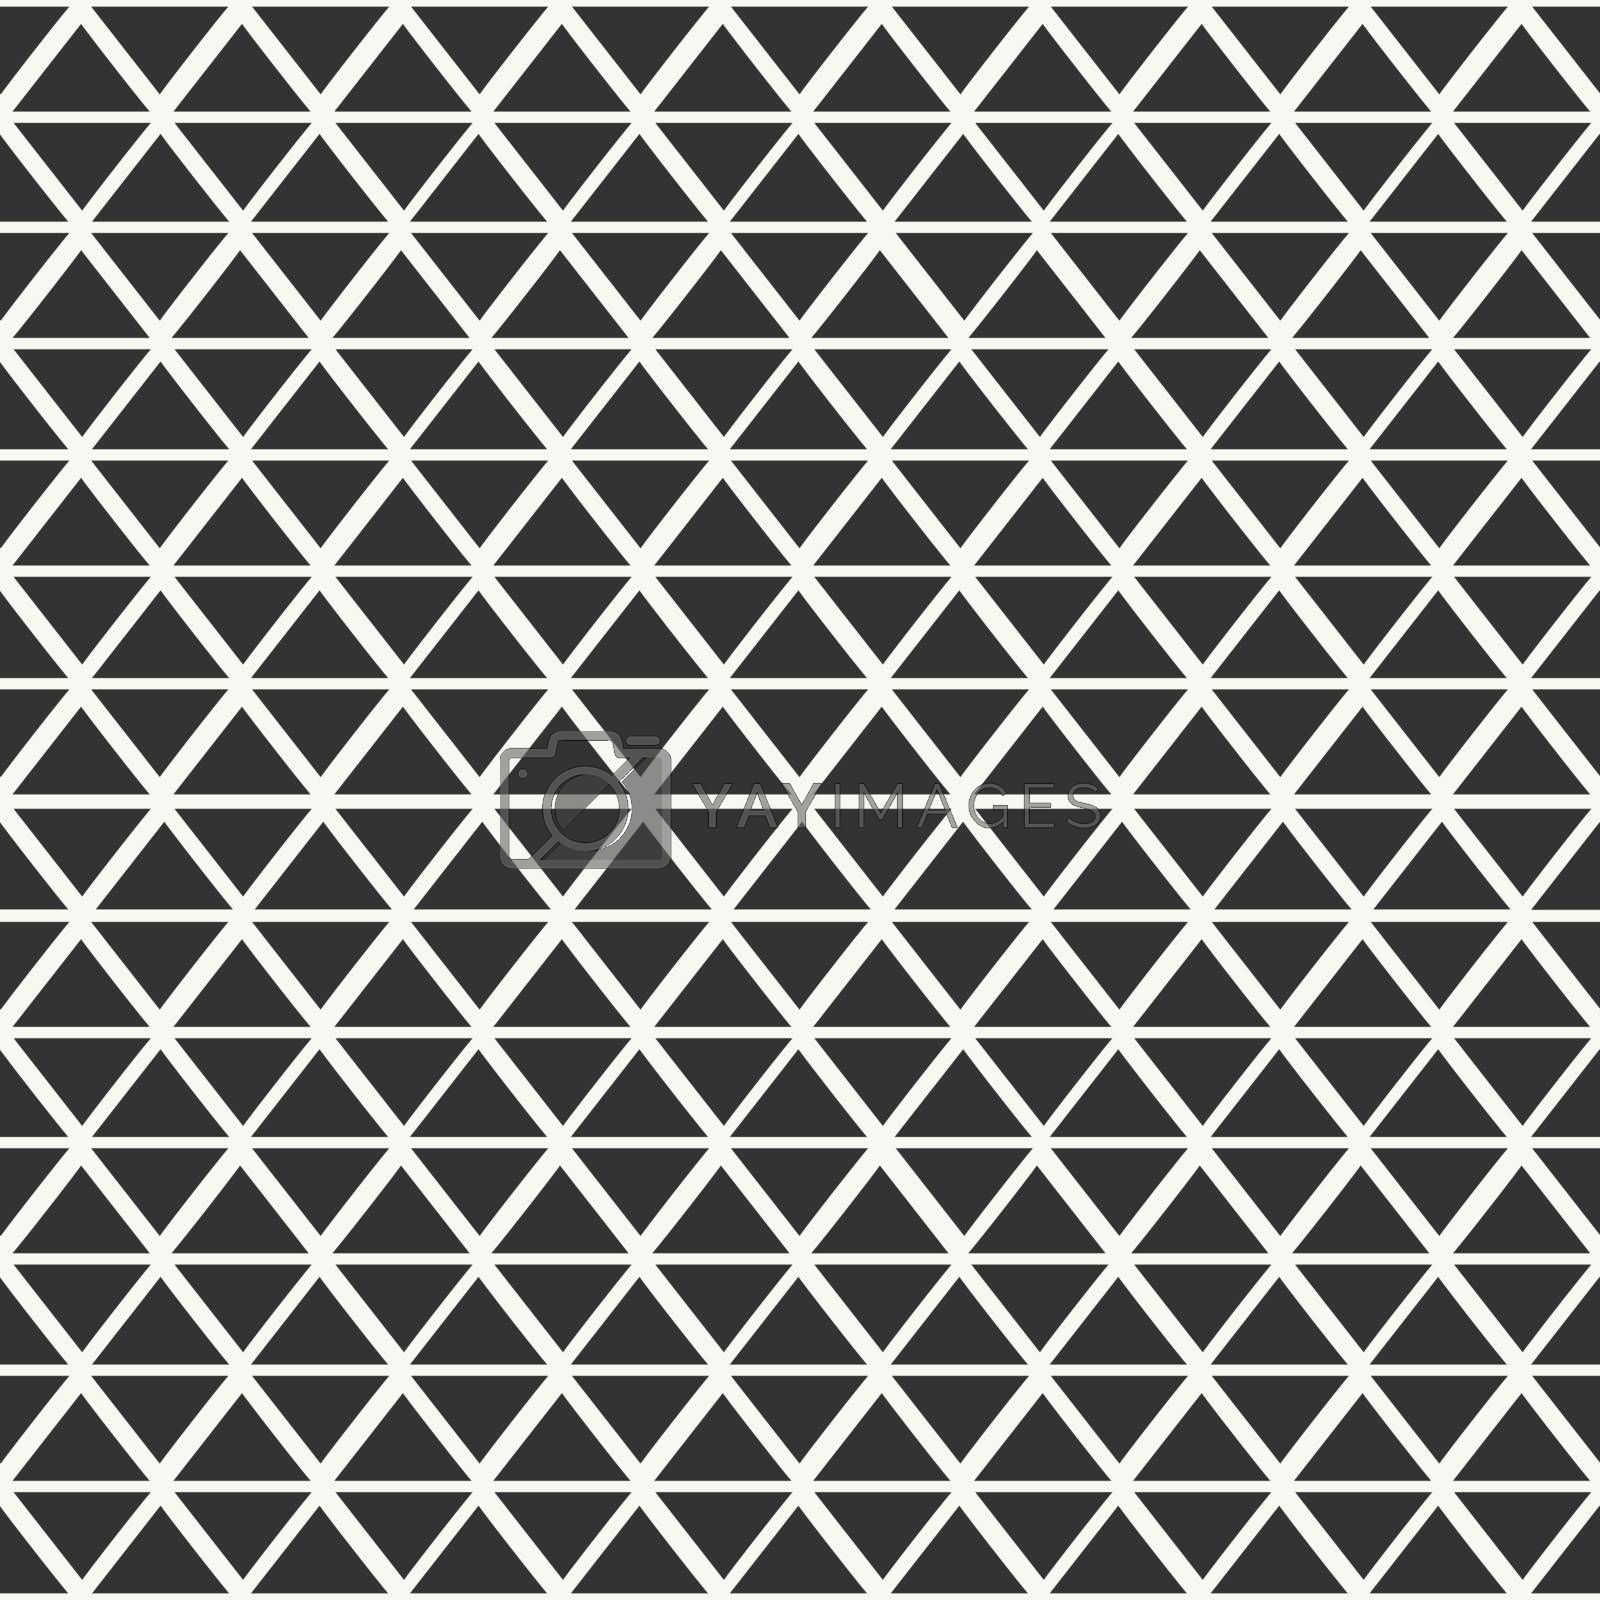 Abstract seamless pattern with triangles in off-white and dark gray.